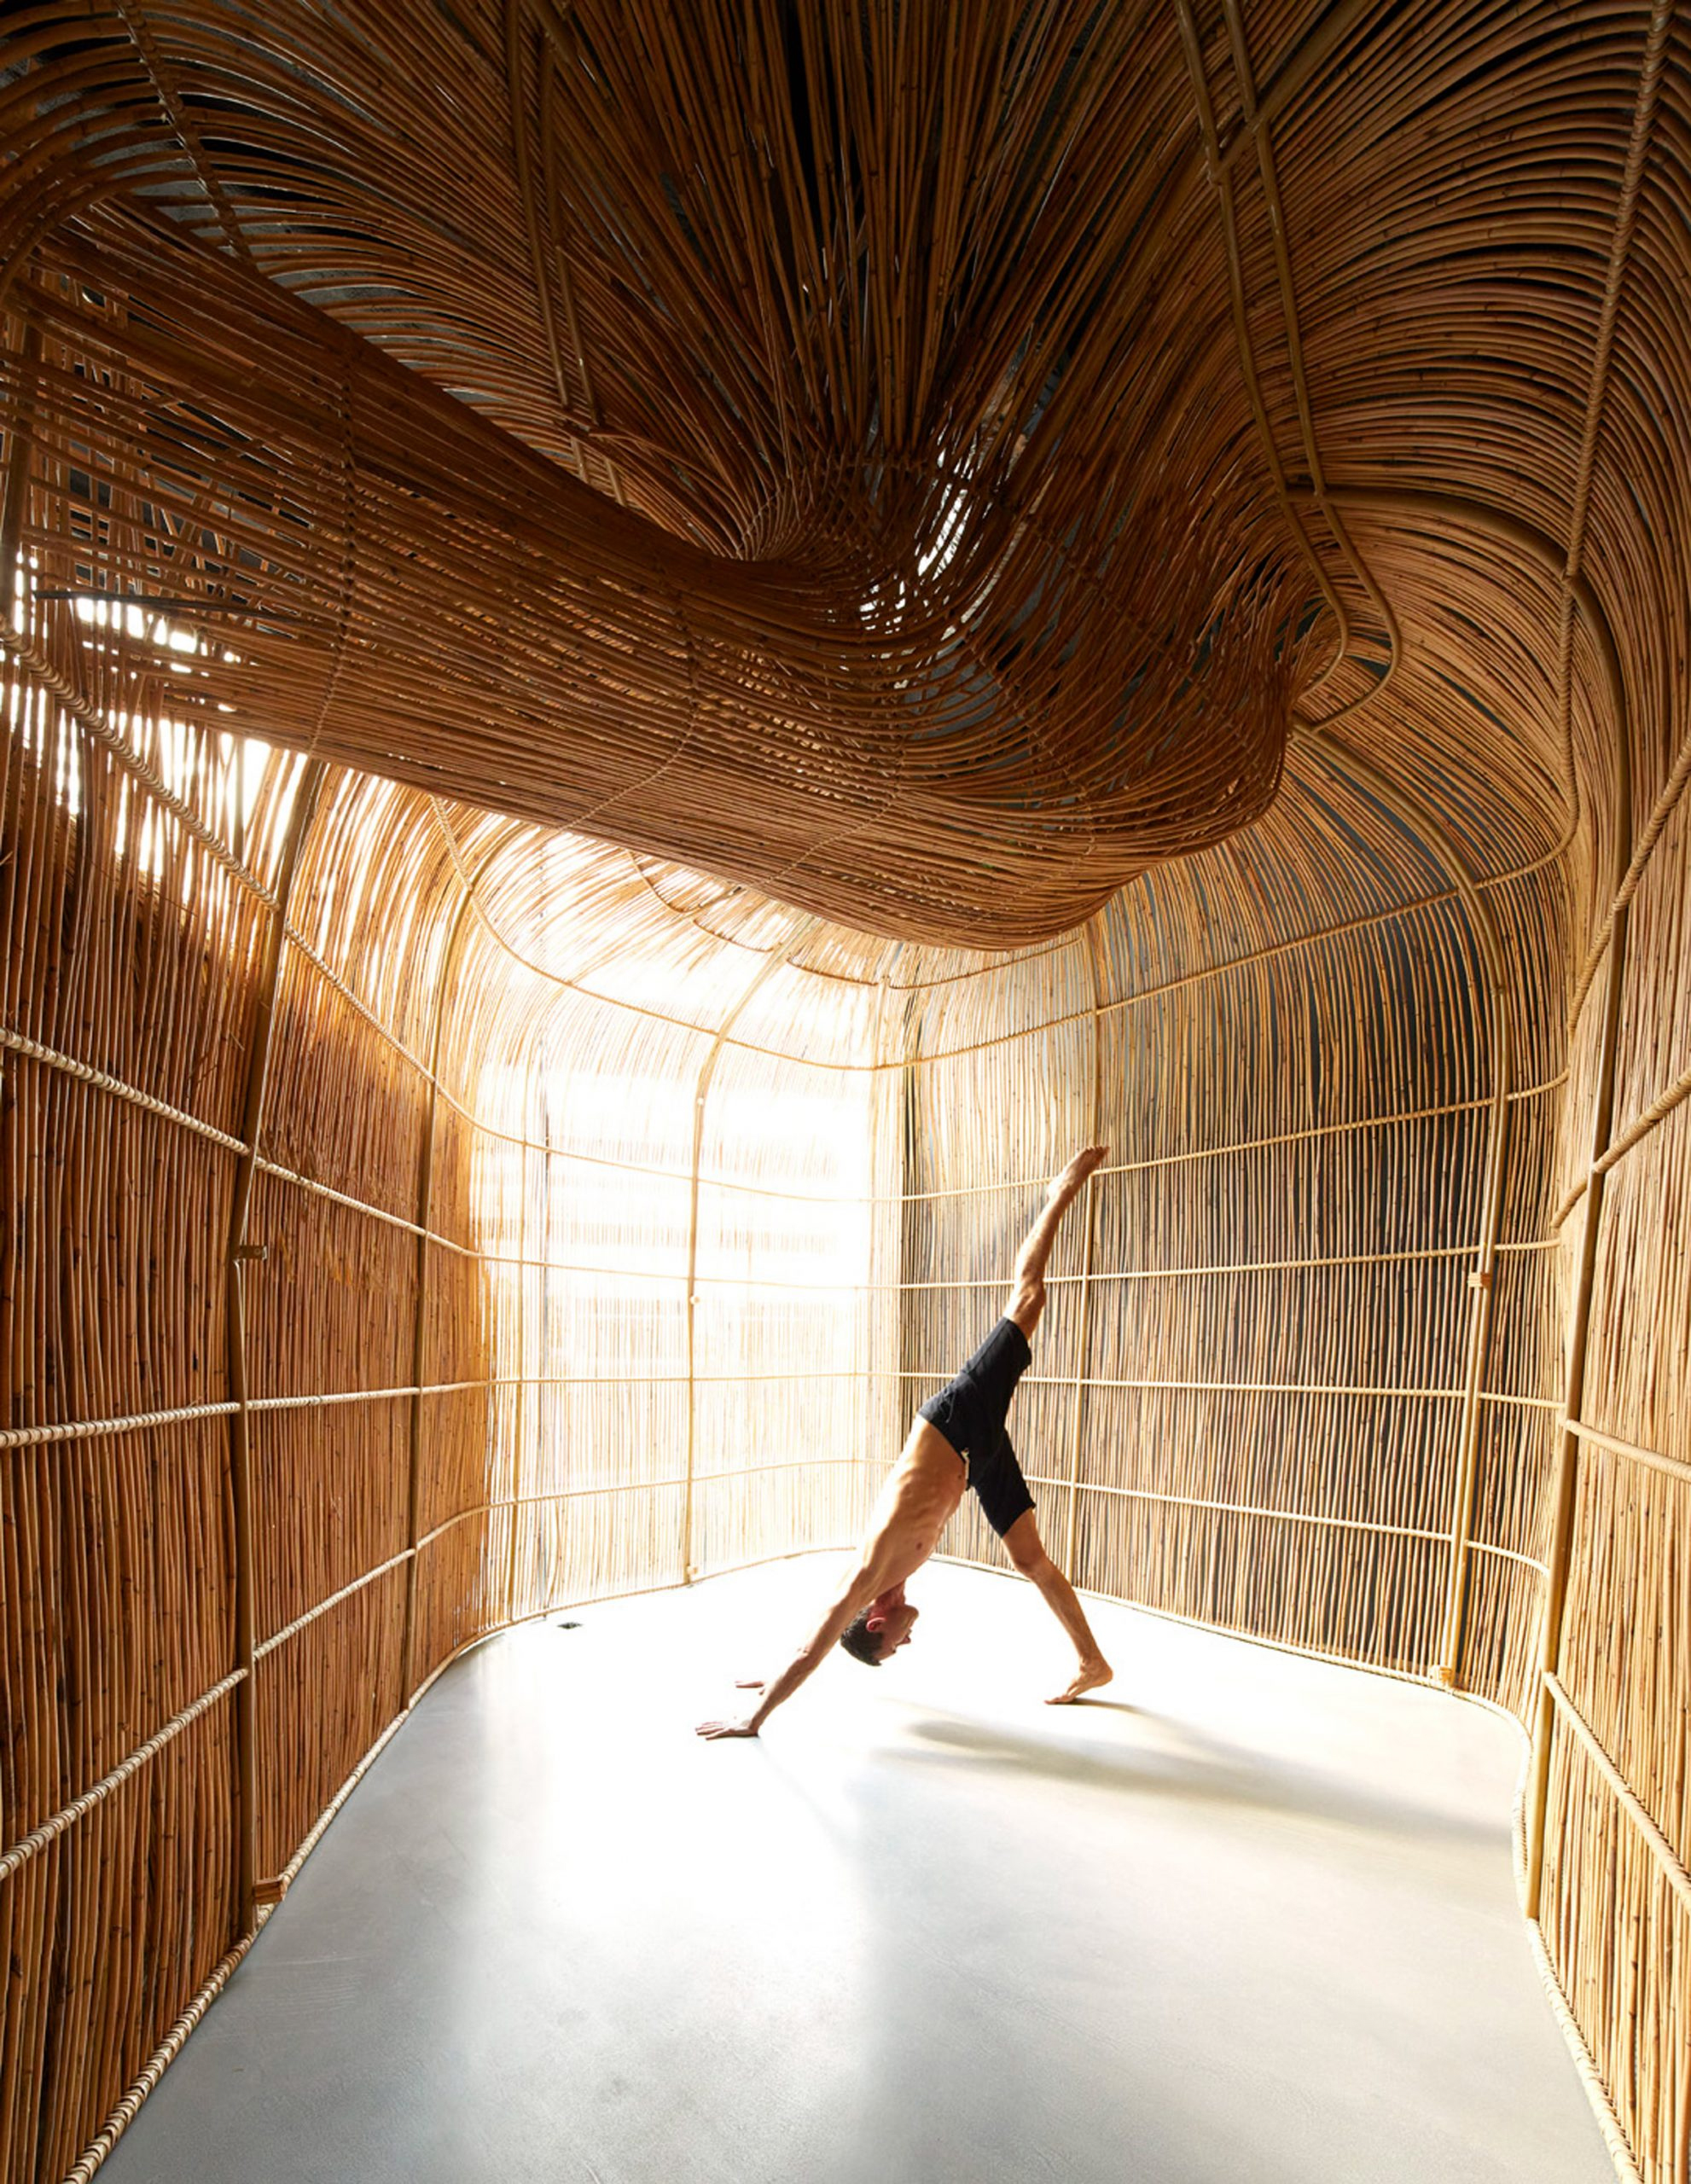 Built From Rattan, A Sinuous Structure Houses a Yoga Sanctuary in Bangkok